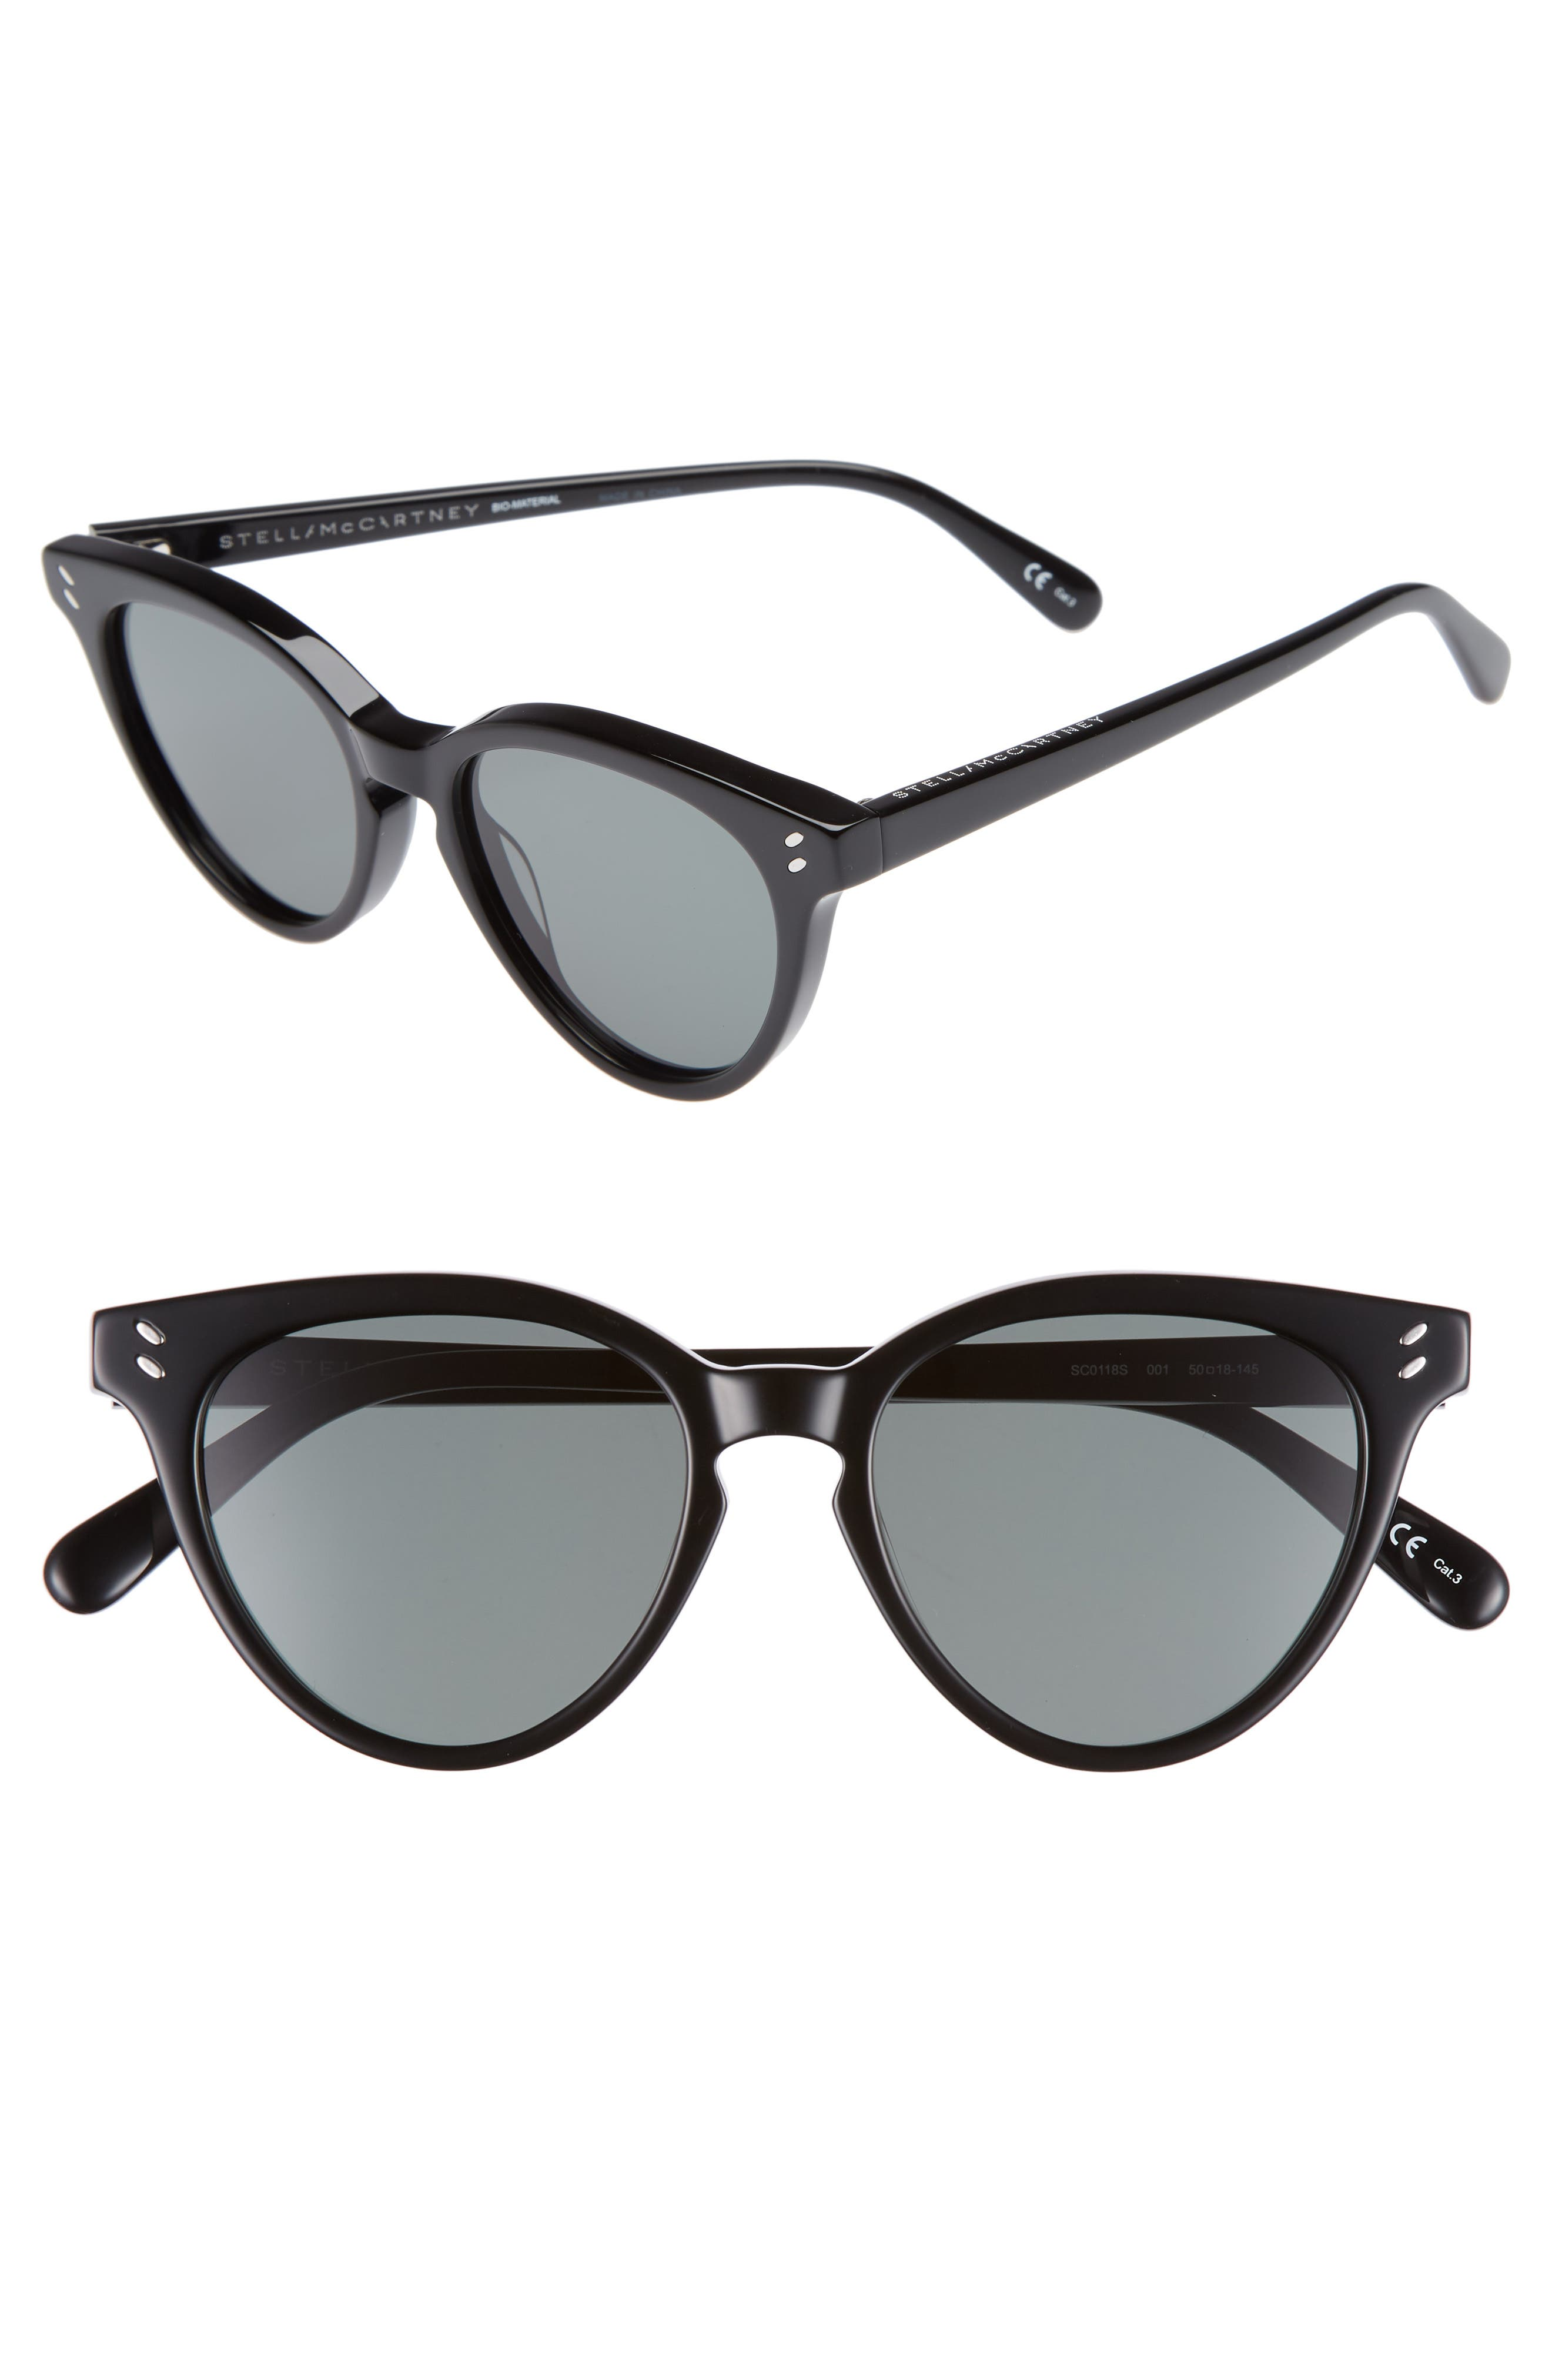 50mm Round Sunglasses,                         Main,                         color, BLACK